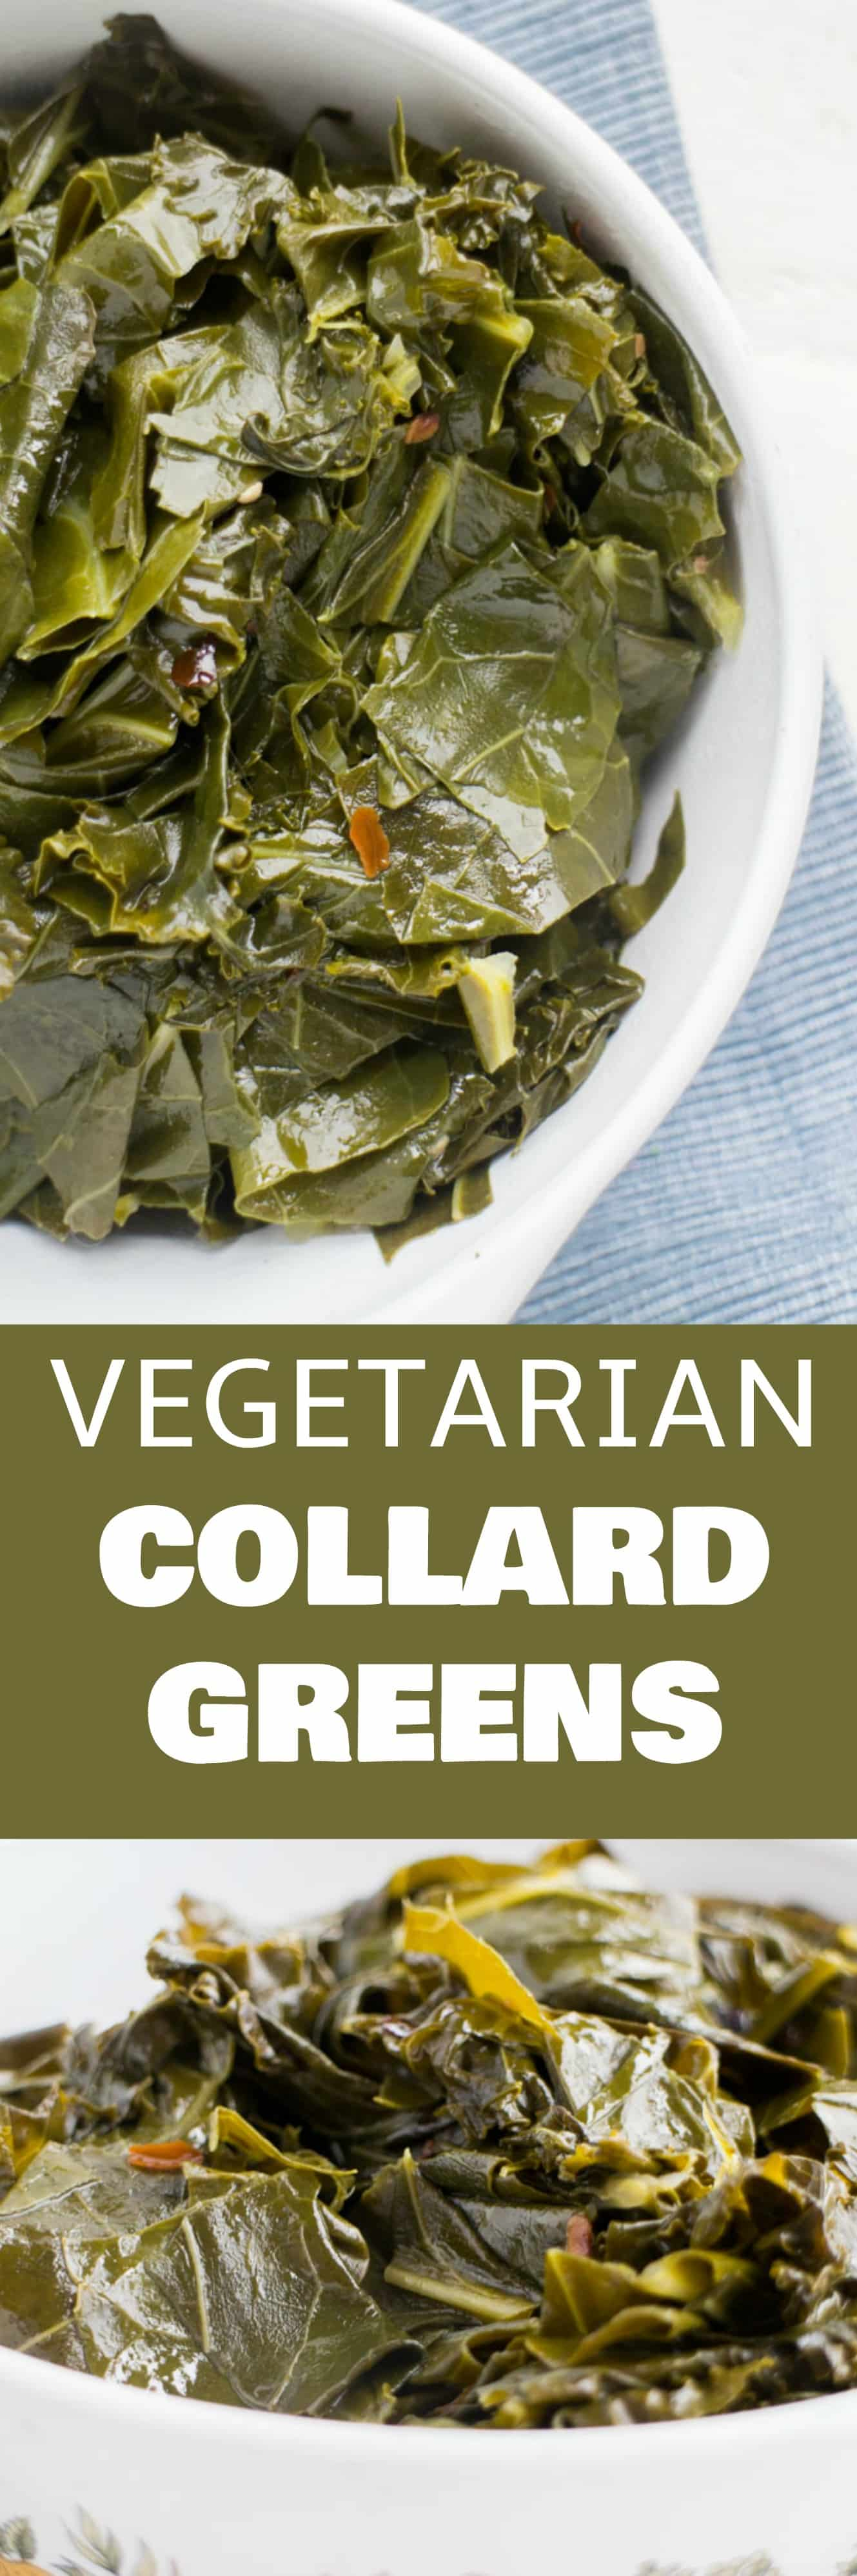 Easy Vegetarian Collard Greens recipe.  These greens are simmered in a brown sugar vegetable broth making them full of flavor!